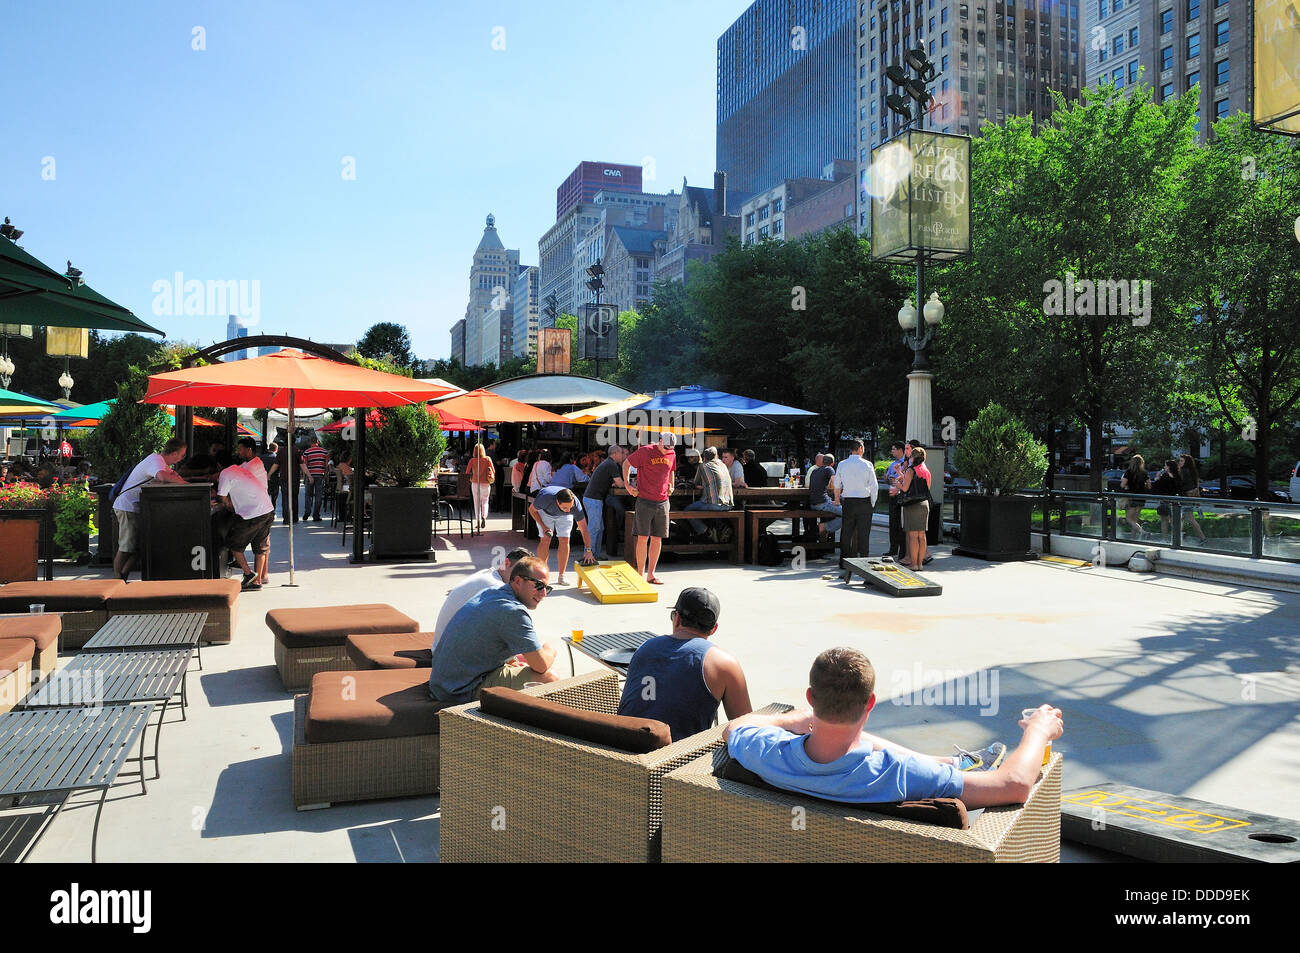 View of Chicago's Park Grill at Millennium Park. Young men watching a game of bean bag toss while lounging. - Stock Image